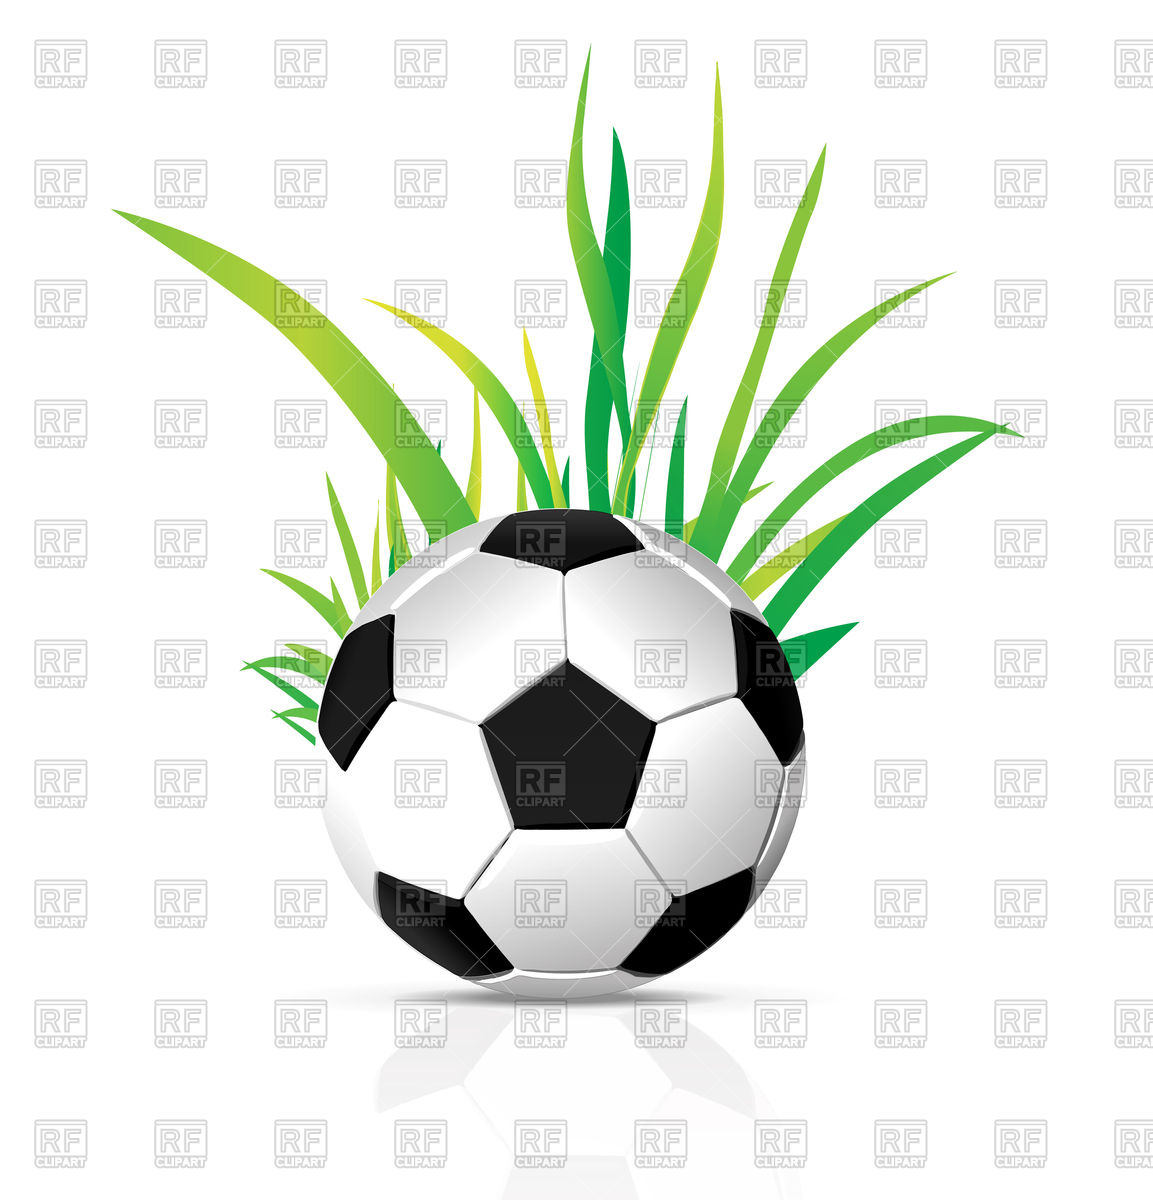 Soccer ball clipart eps picture library download Soccer ball with grass Vector Image #74432 – RFclipart picture library download